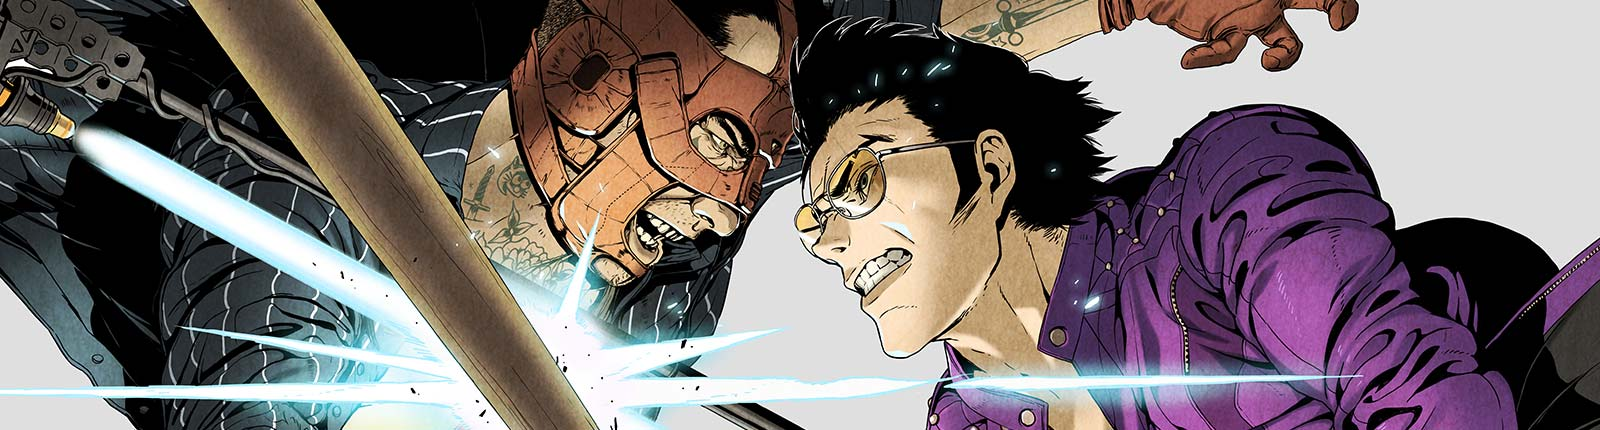 NMag Podcast #265 – Travis Strikes Again: No More Heroes